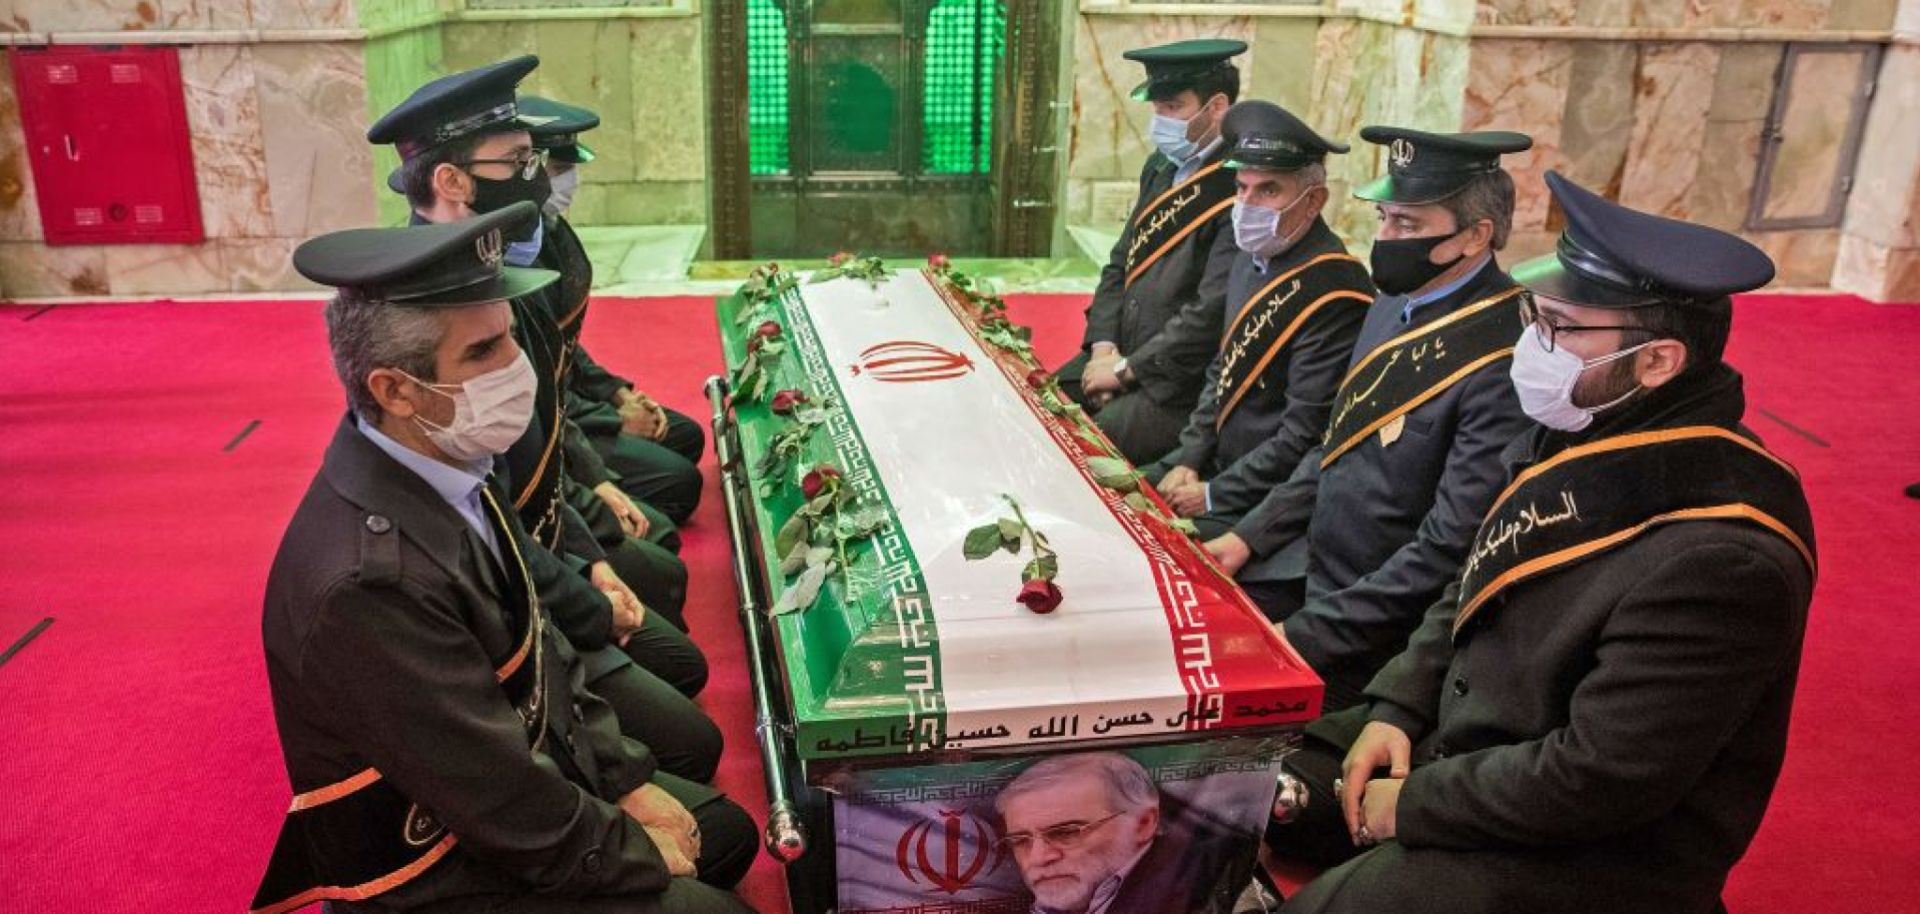 Members of Iranian forces pray around the coffin of slain nuclear scientist Mohsen Fakhrizadeh during his burial ceremony at Imamzadeh Saleh shrine in northern Tehran on Nov. 30, 2020.